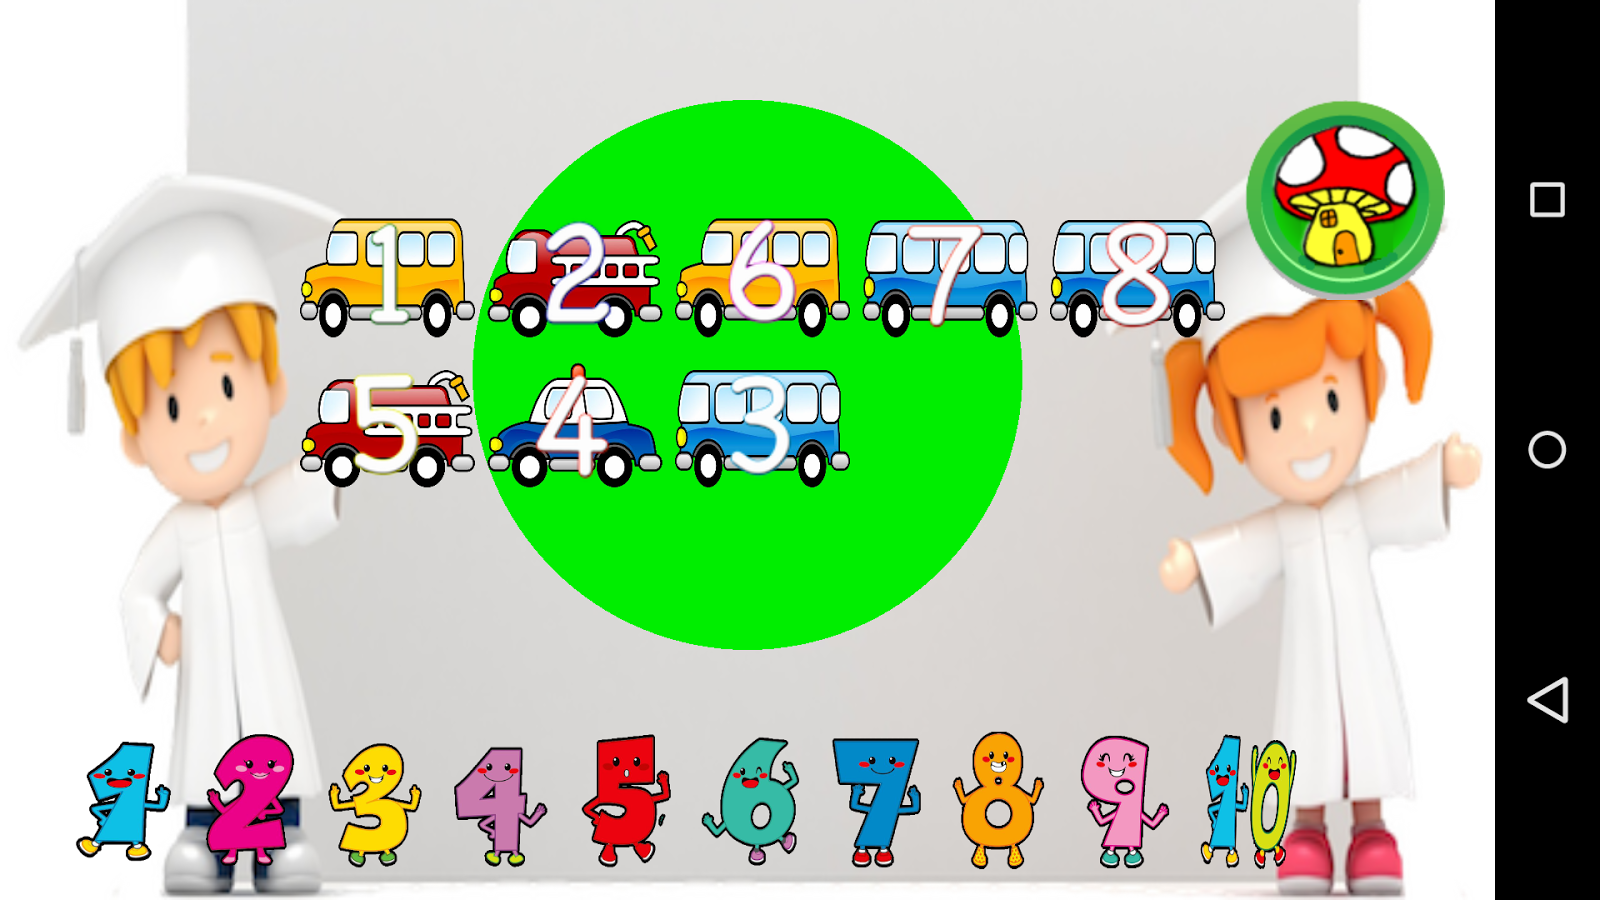 worksheet Counting Numbers monkey counting numbers free android apps on google play screenshot